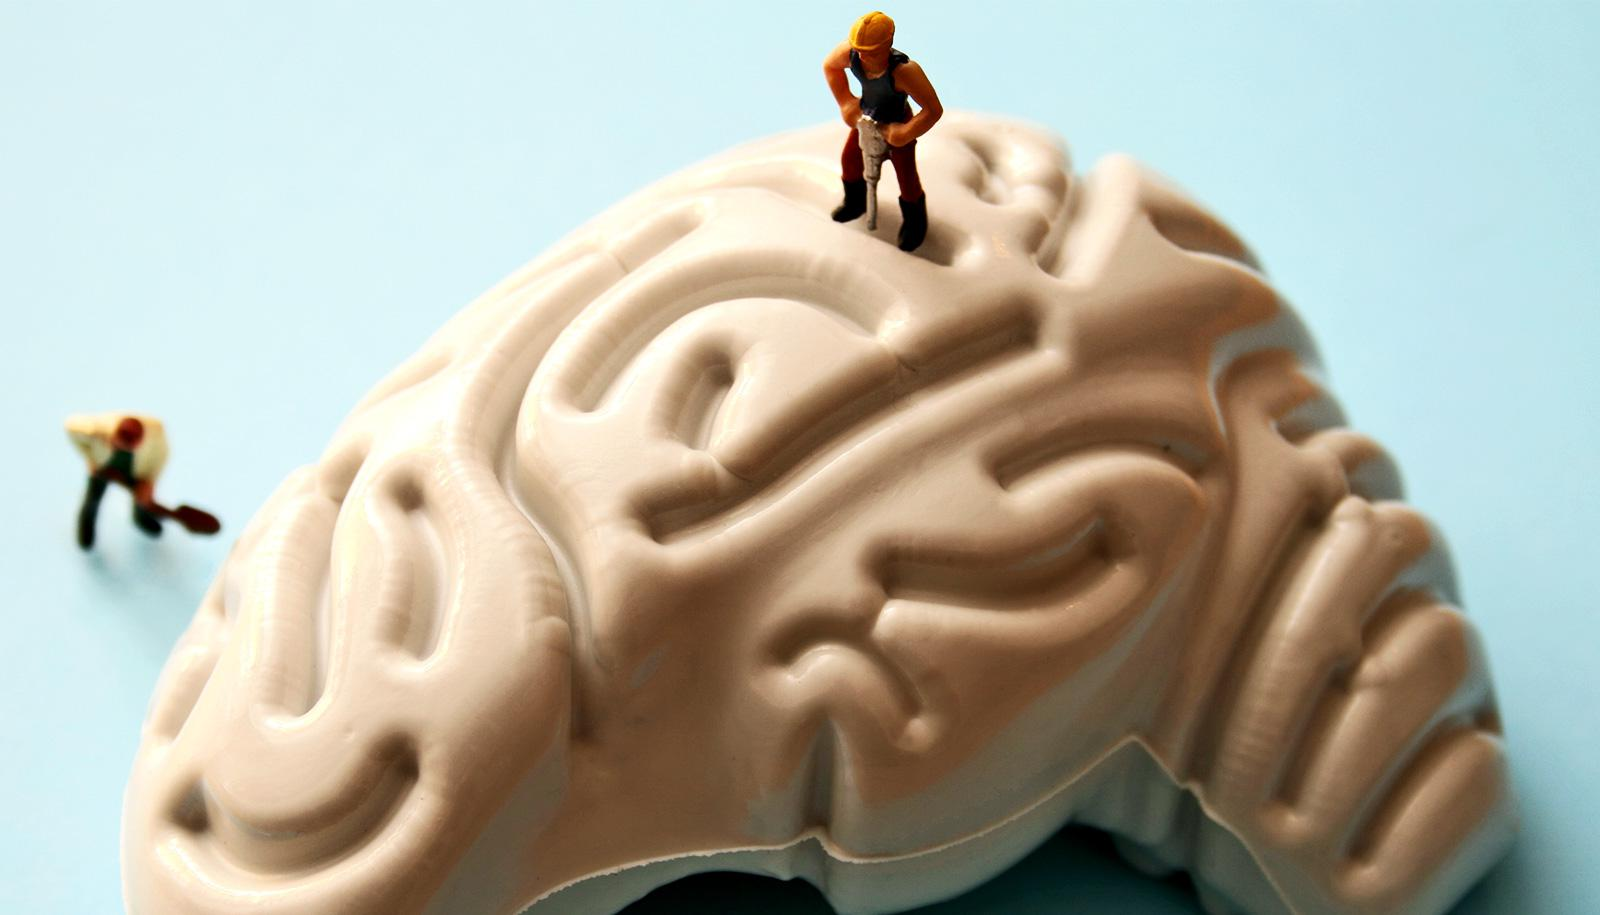 Small figures do construction work on a model of a brain